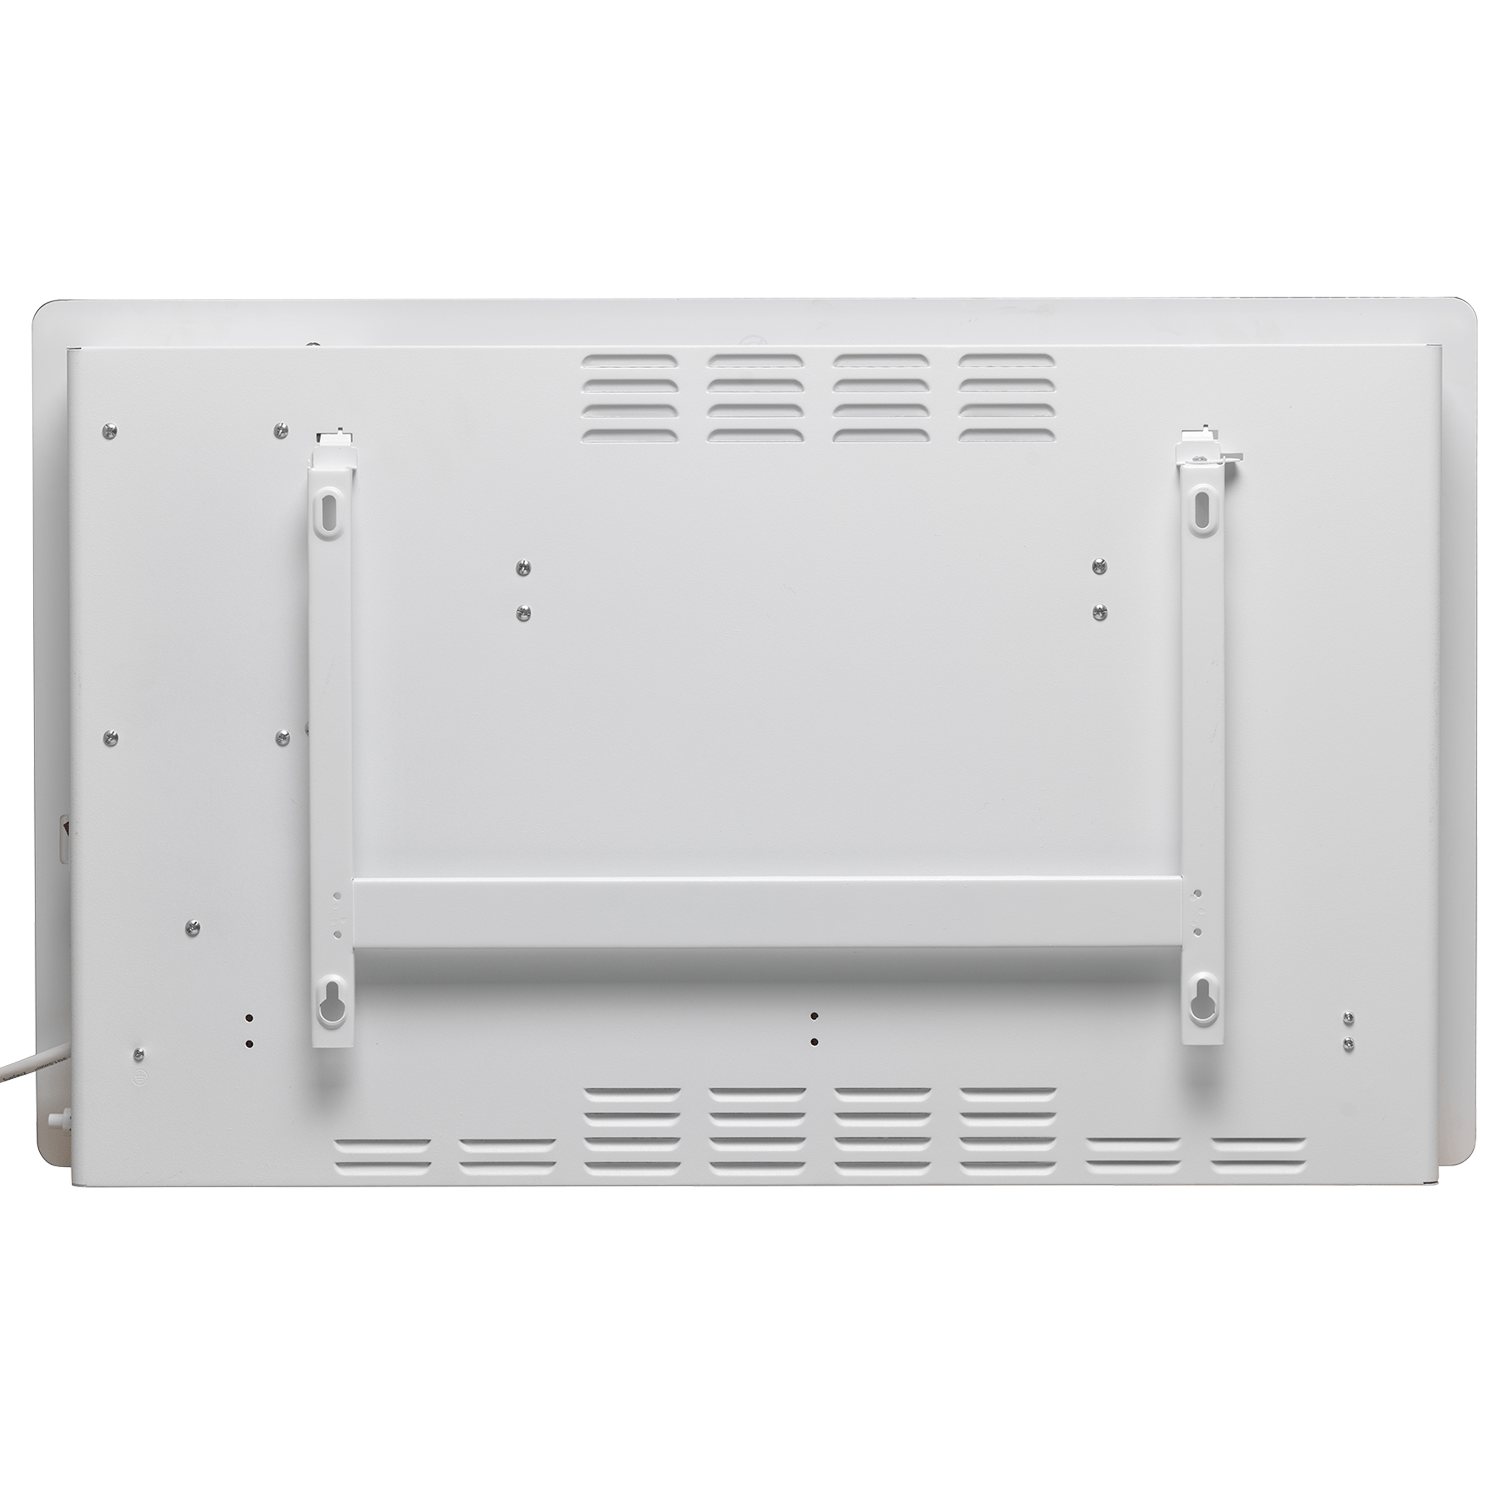 SolAire Reno WIFI Electric Panel Heater, Wall Mounted or Portable